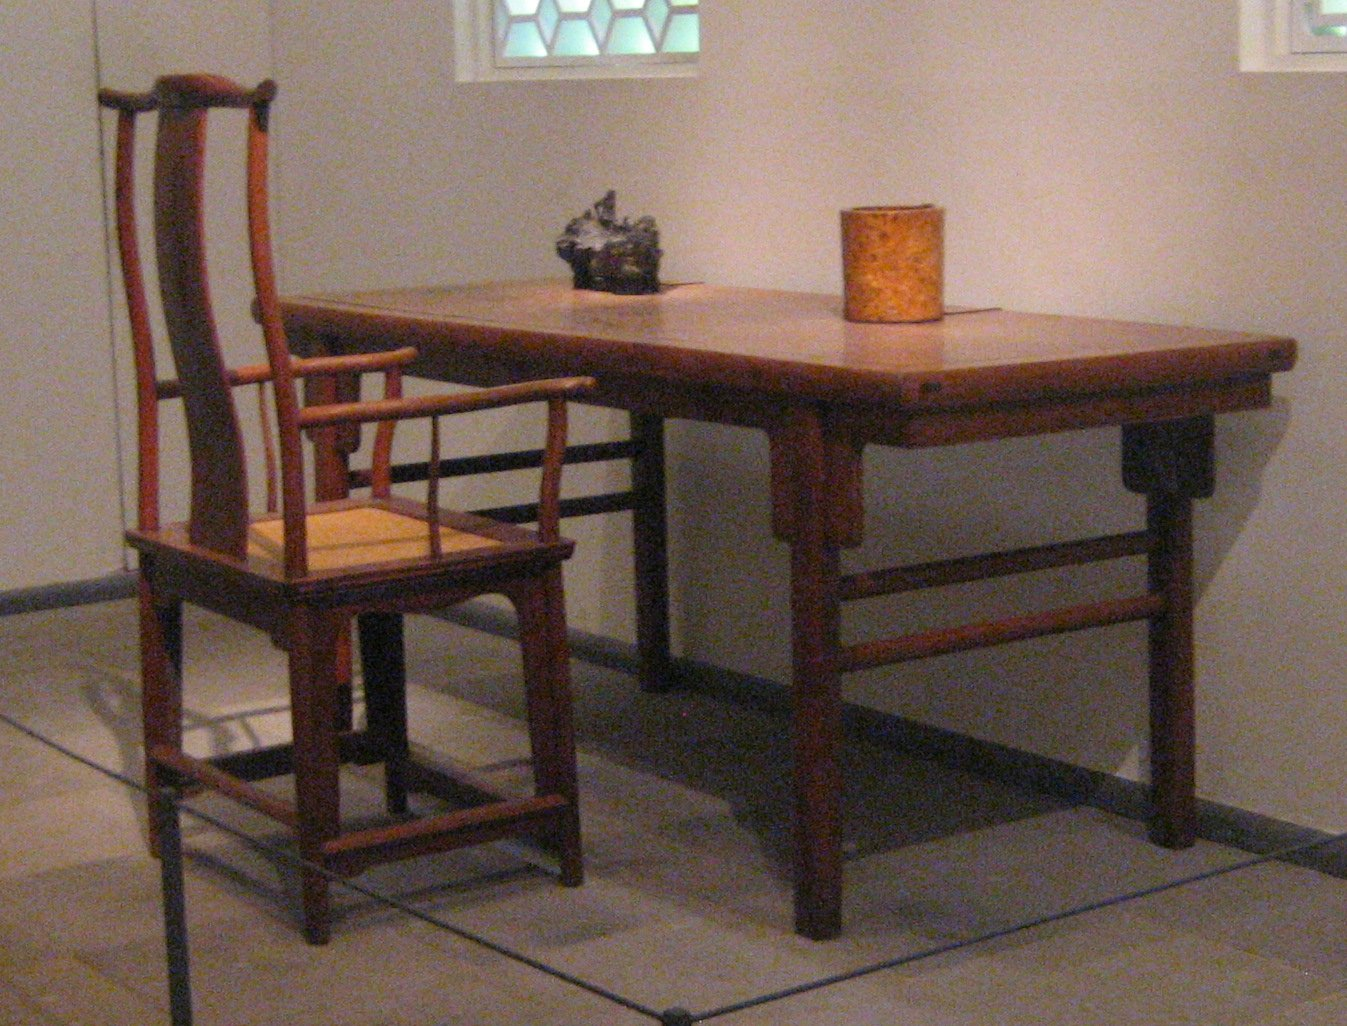 old office chair and table adult gaming chairs file yokeback armchair painting ming dynasty